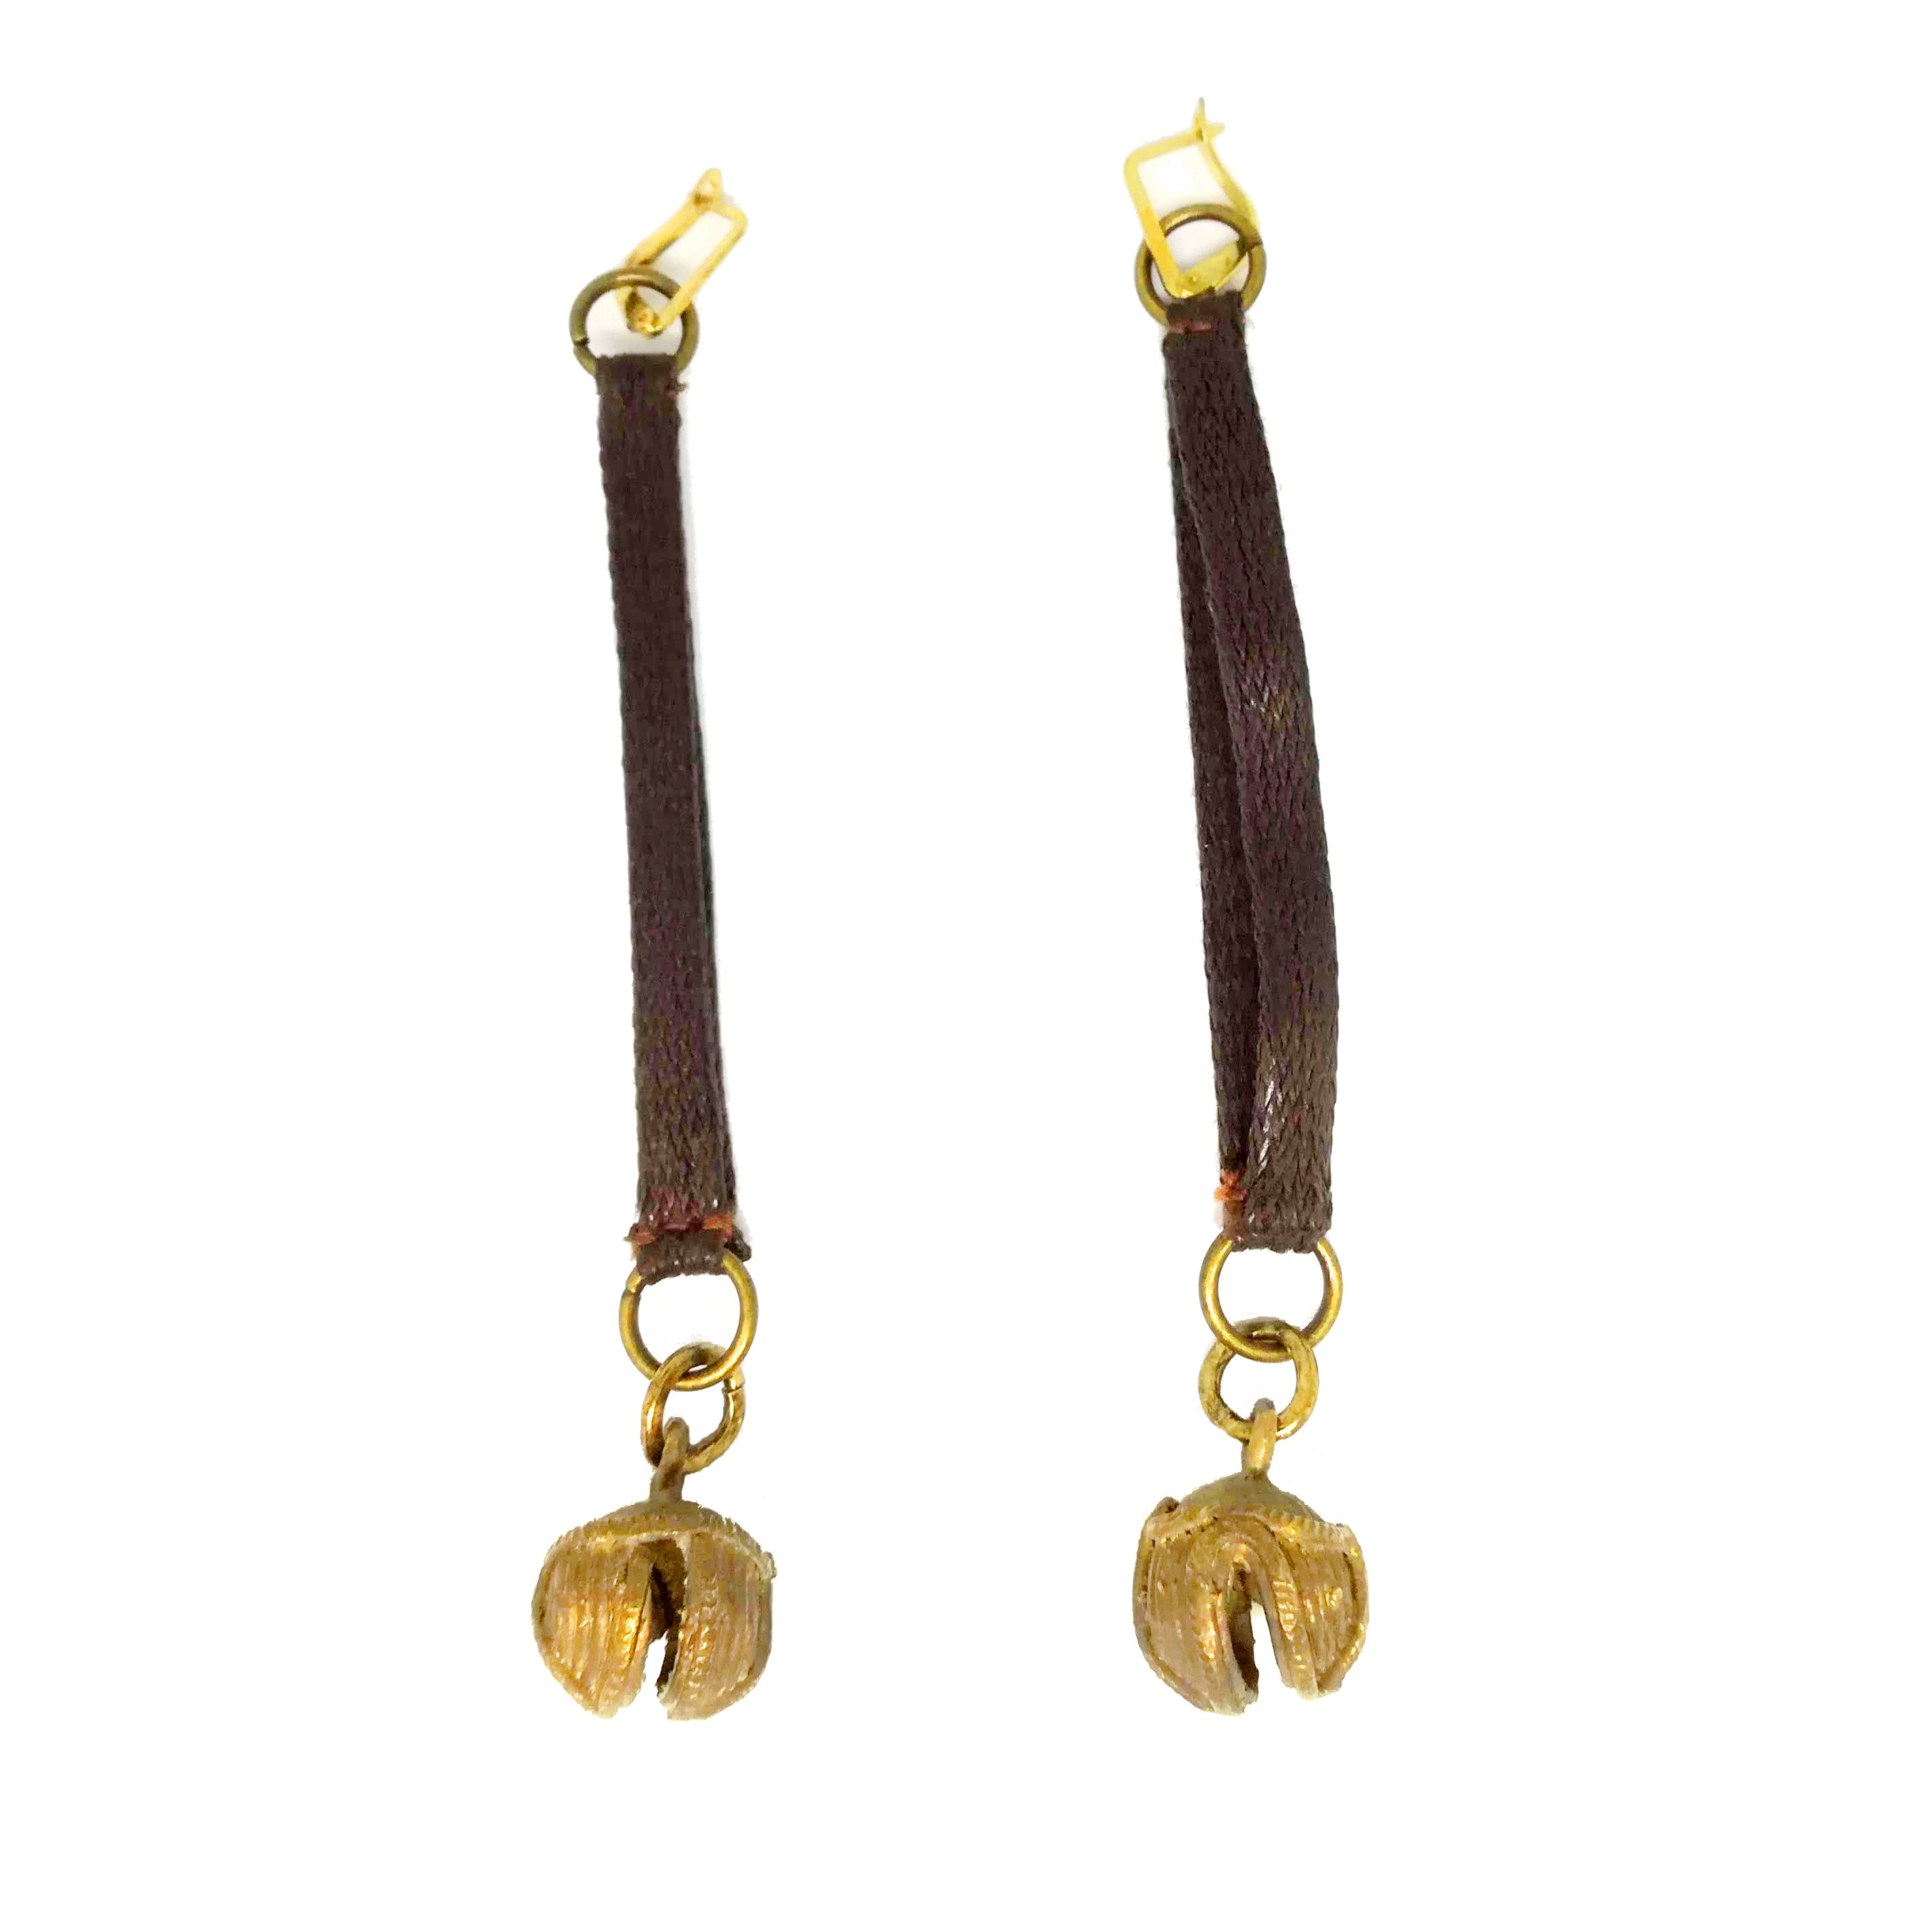 T'loyong — Leather Dangler